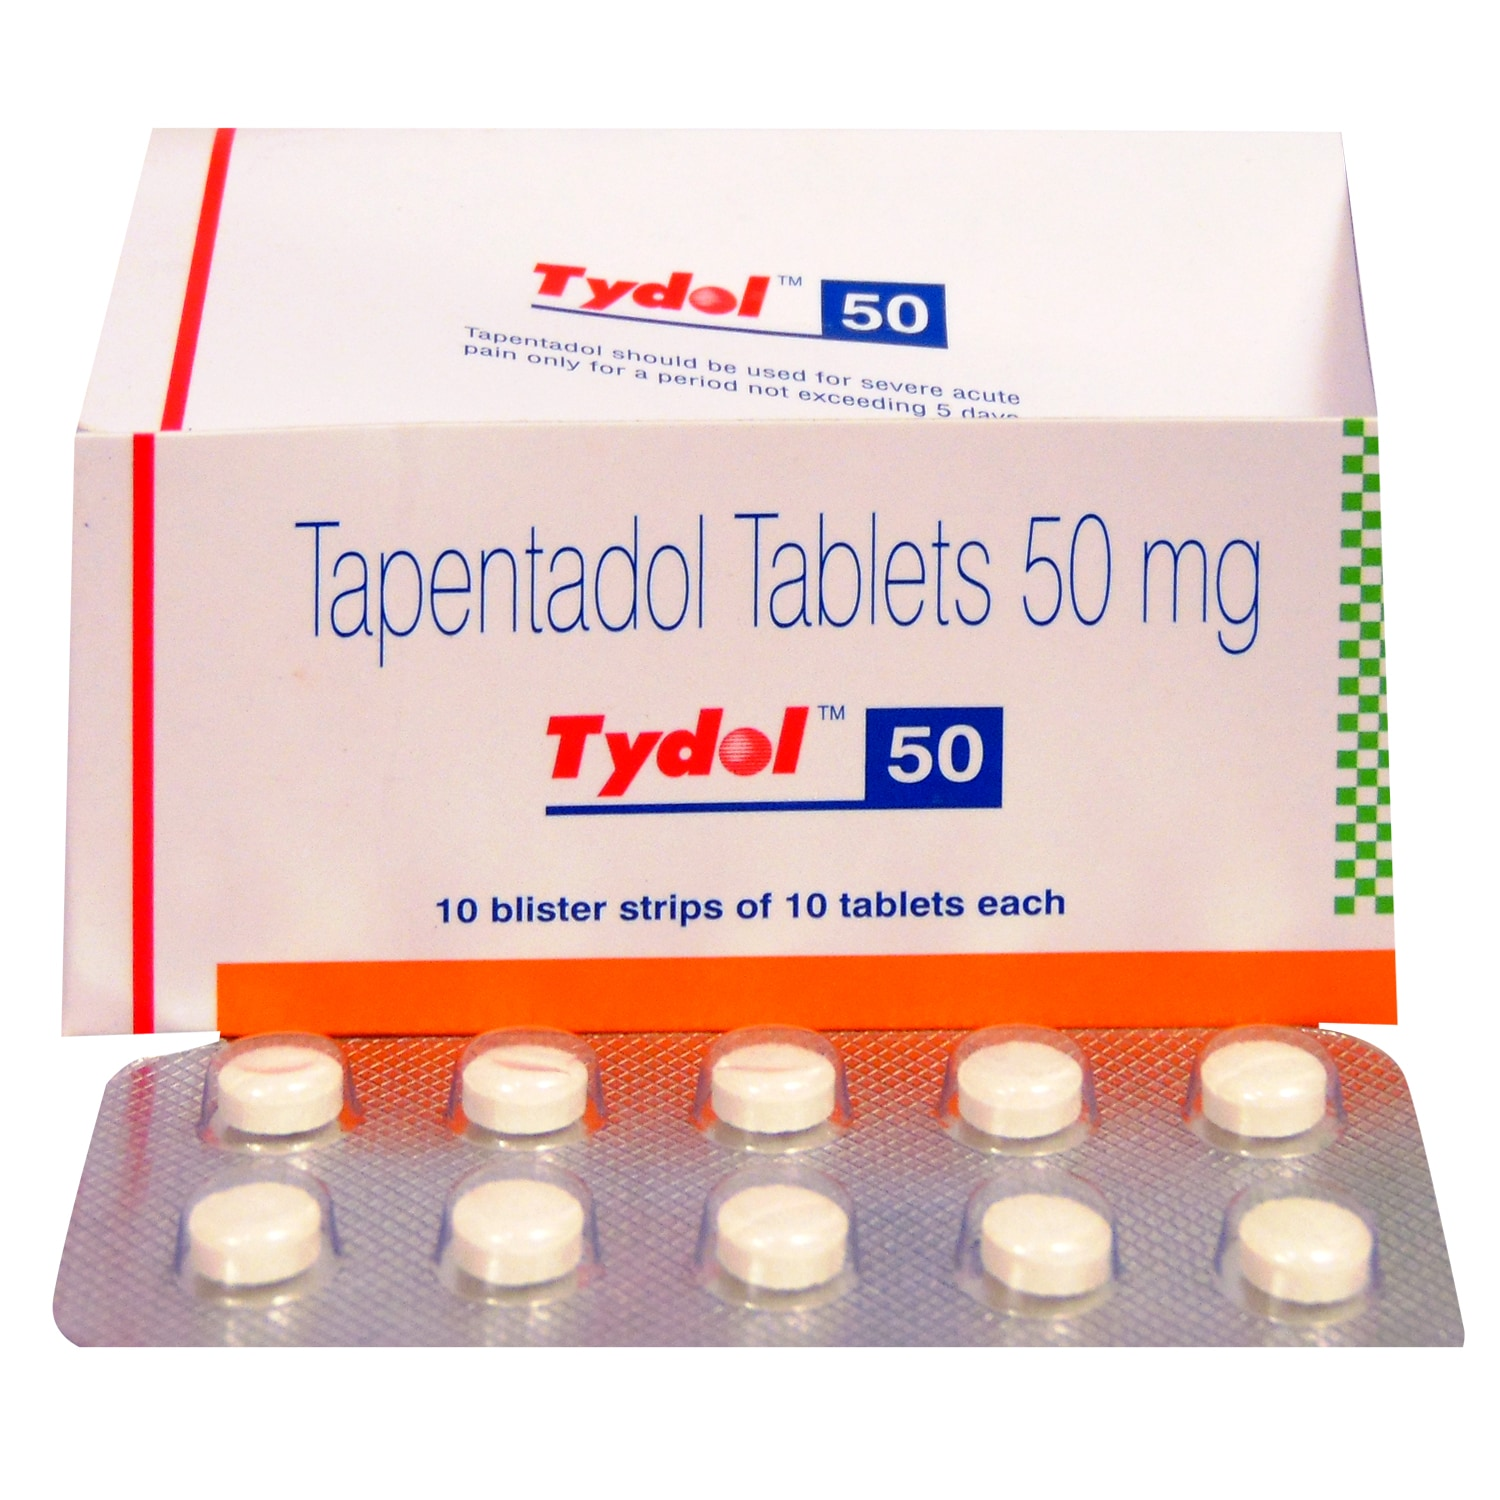 TYDOL 50MG TABLET Price, Uses, Side Effects, Composition - Apollo Pharmacy